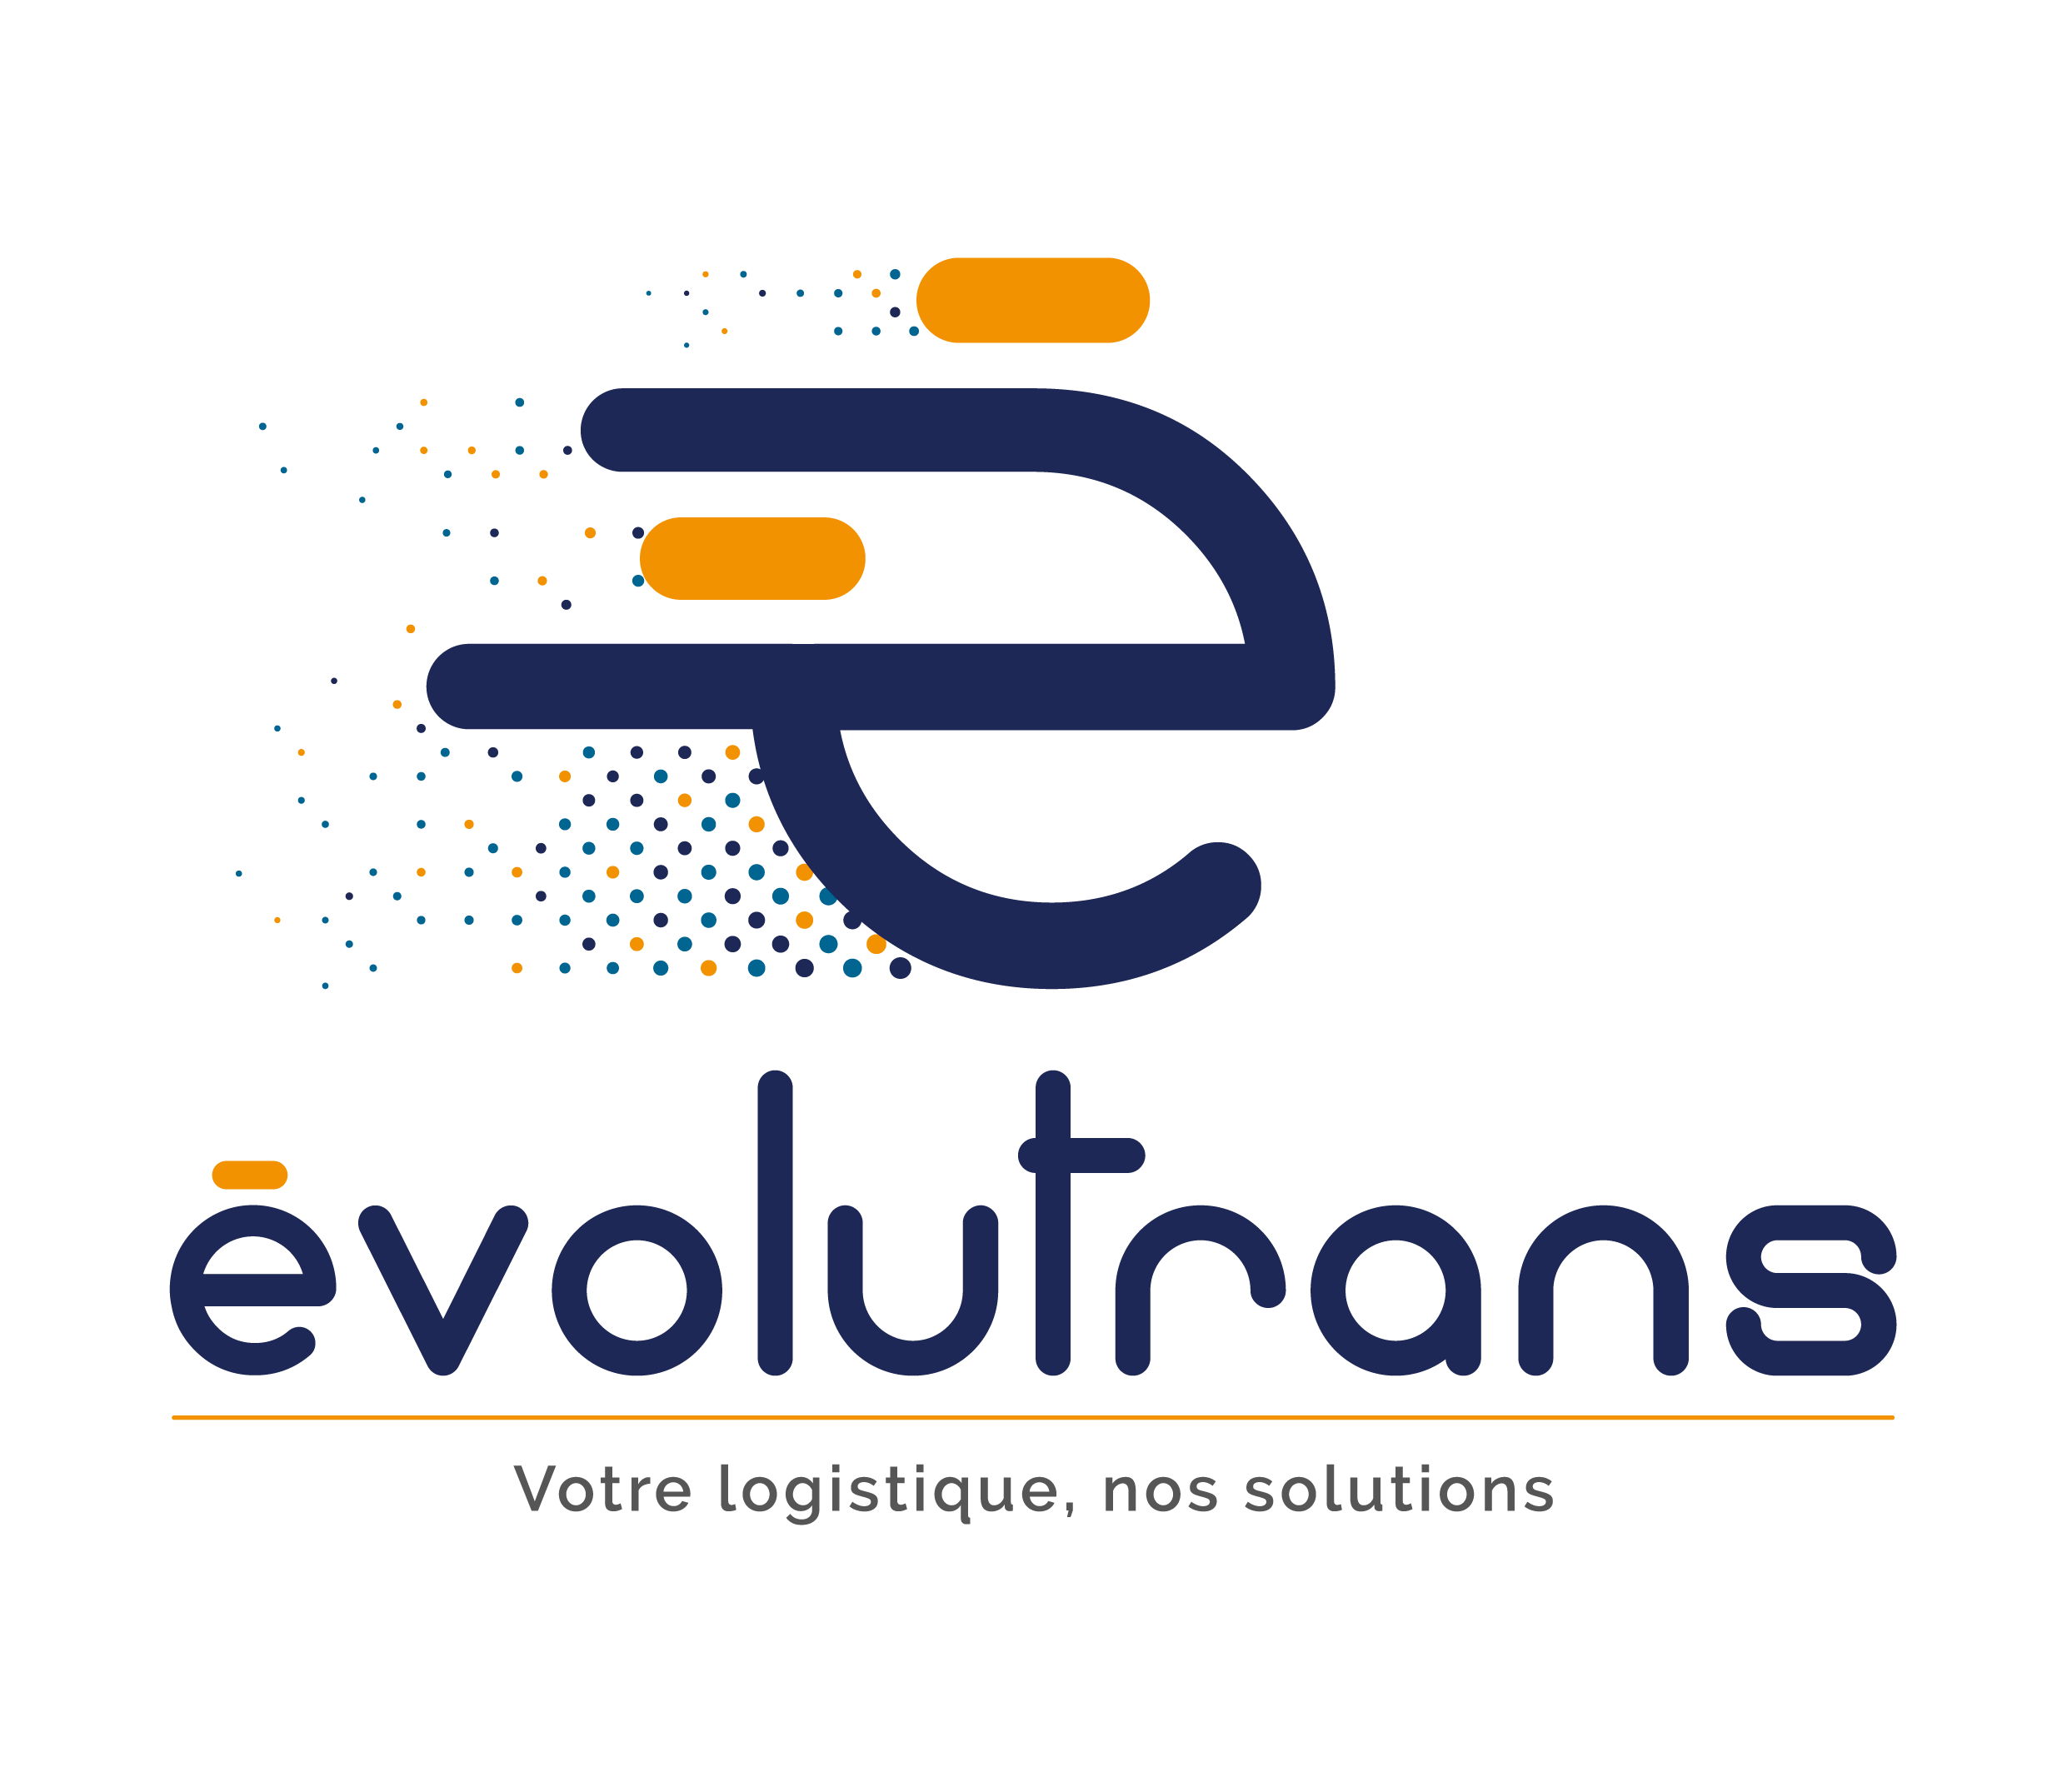 Logo Evolutrans Provence Distribution Logistique